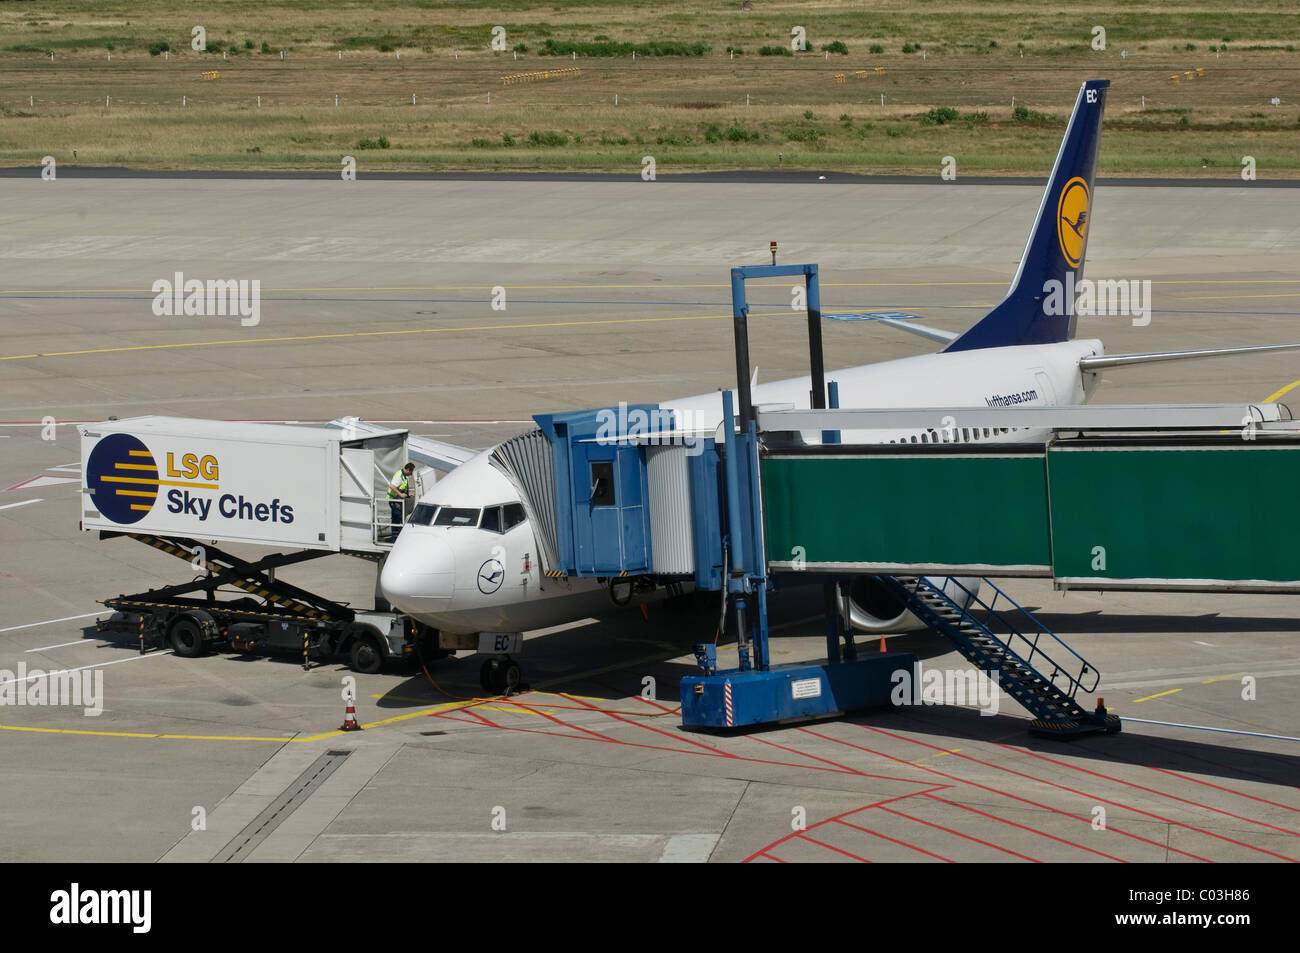 Lufthansa plane being unloaded, container and gangway connected to the airplane, apron, Cologne Bonn Airport - Stock Image